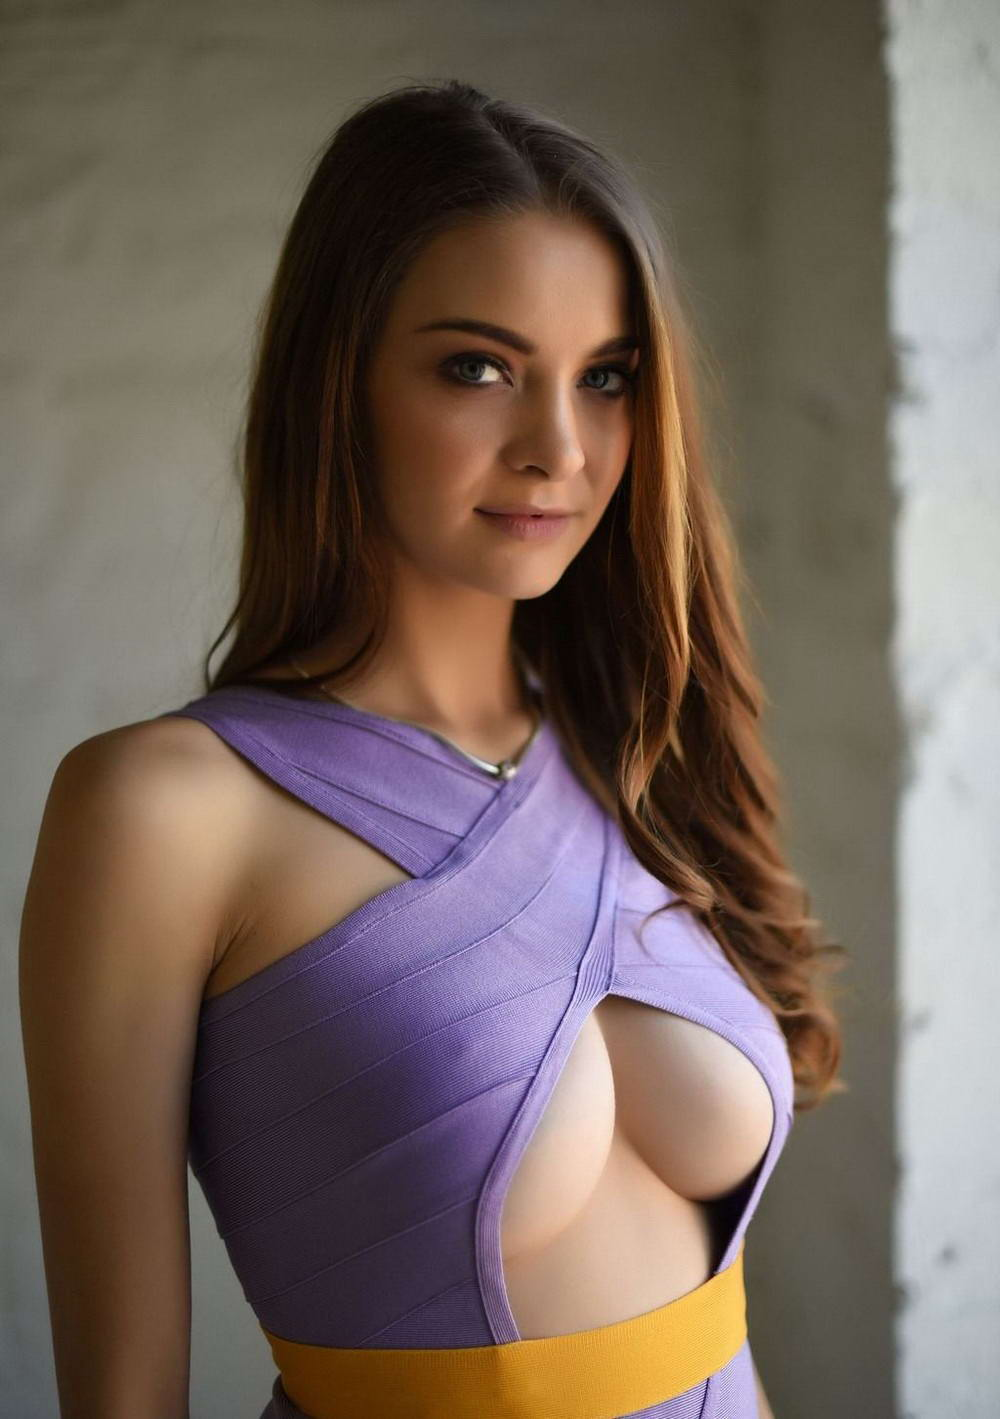 Busty Girls Don't Hide Their Hot Cleavages (35 Photos + 5 GIFs)